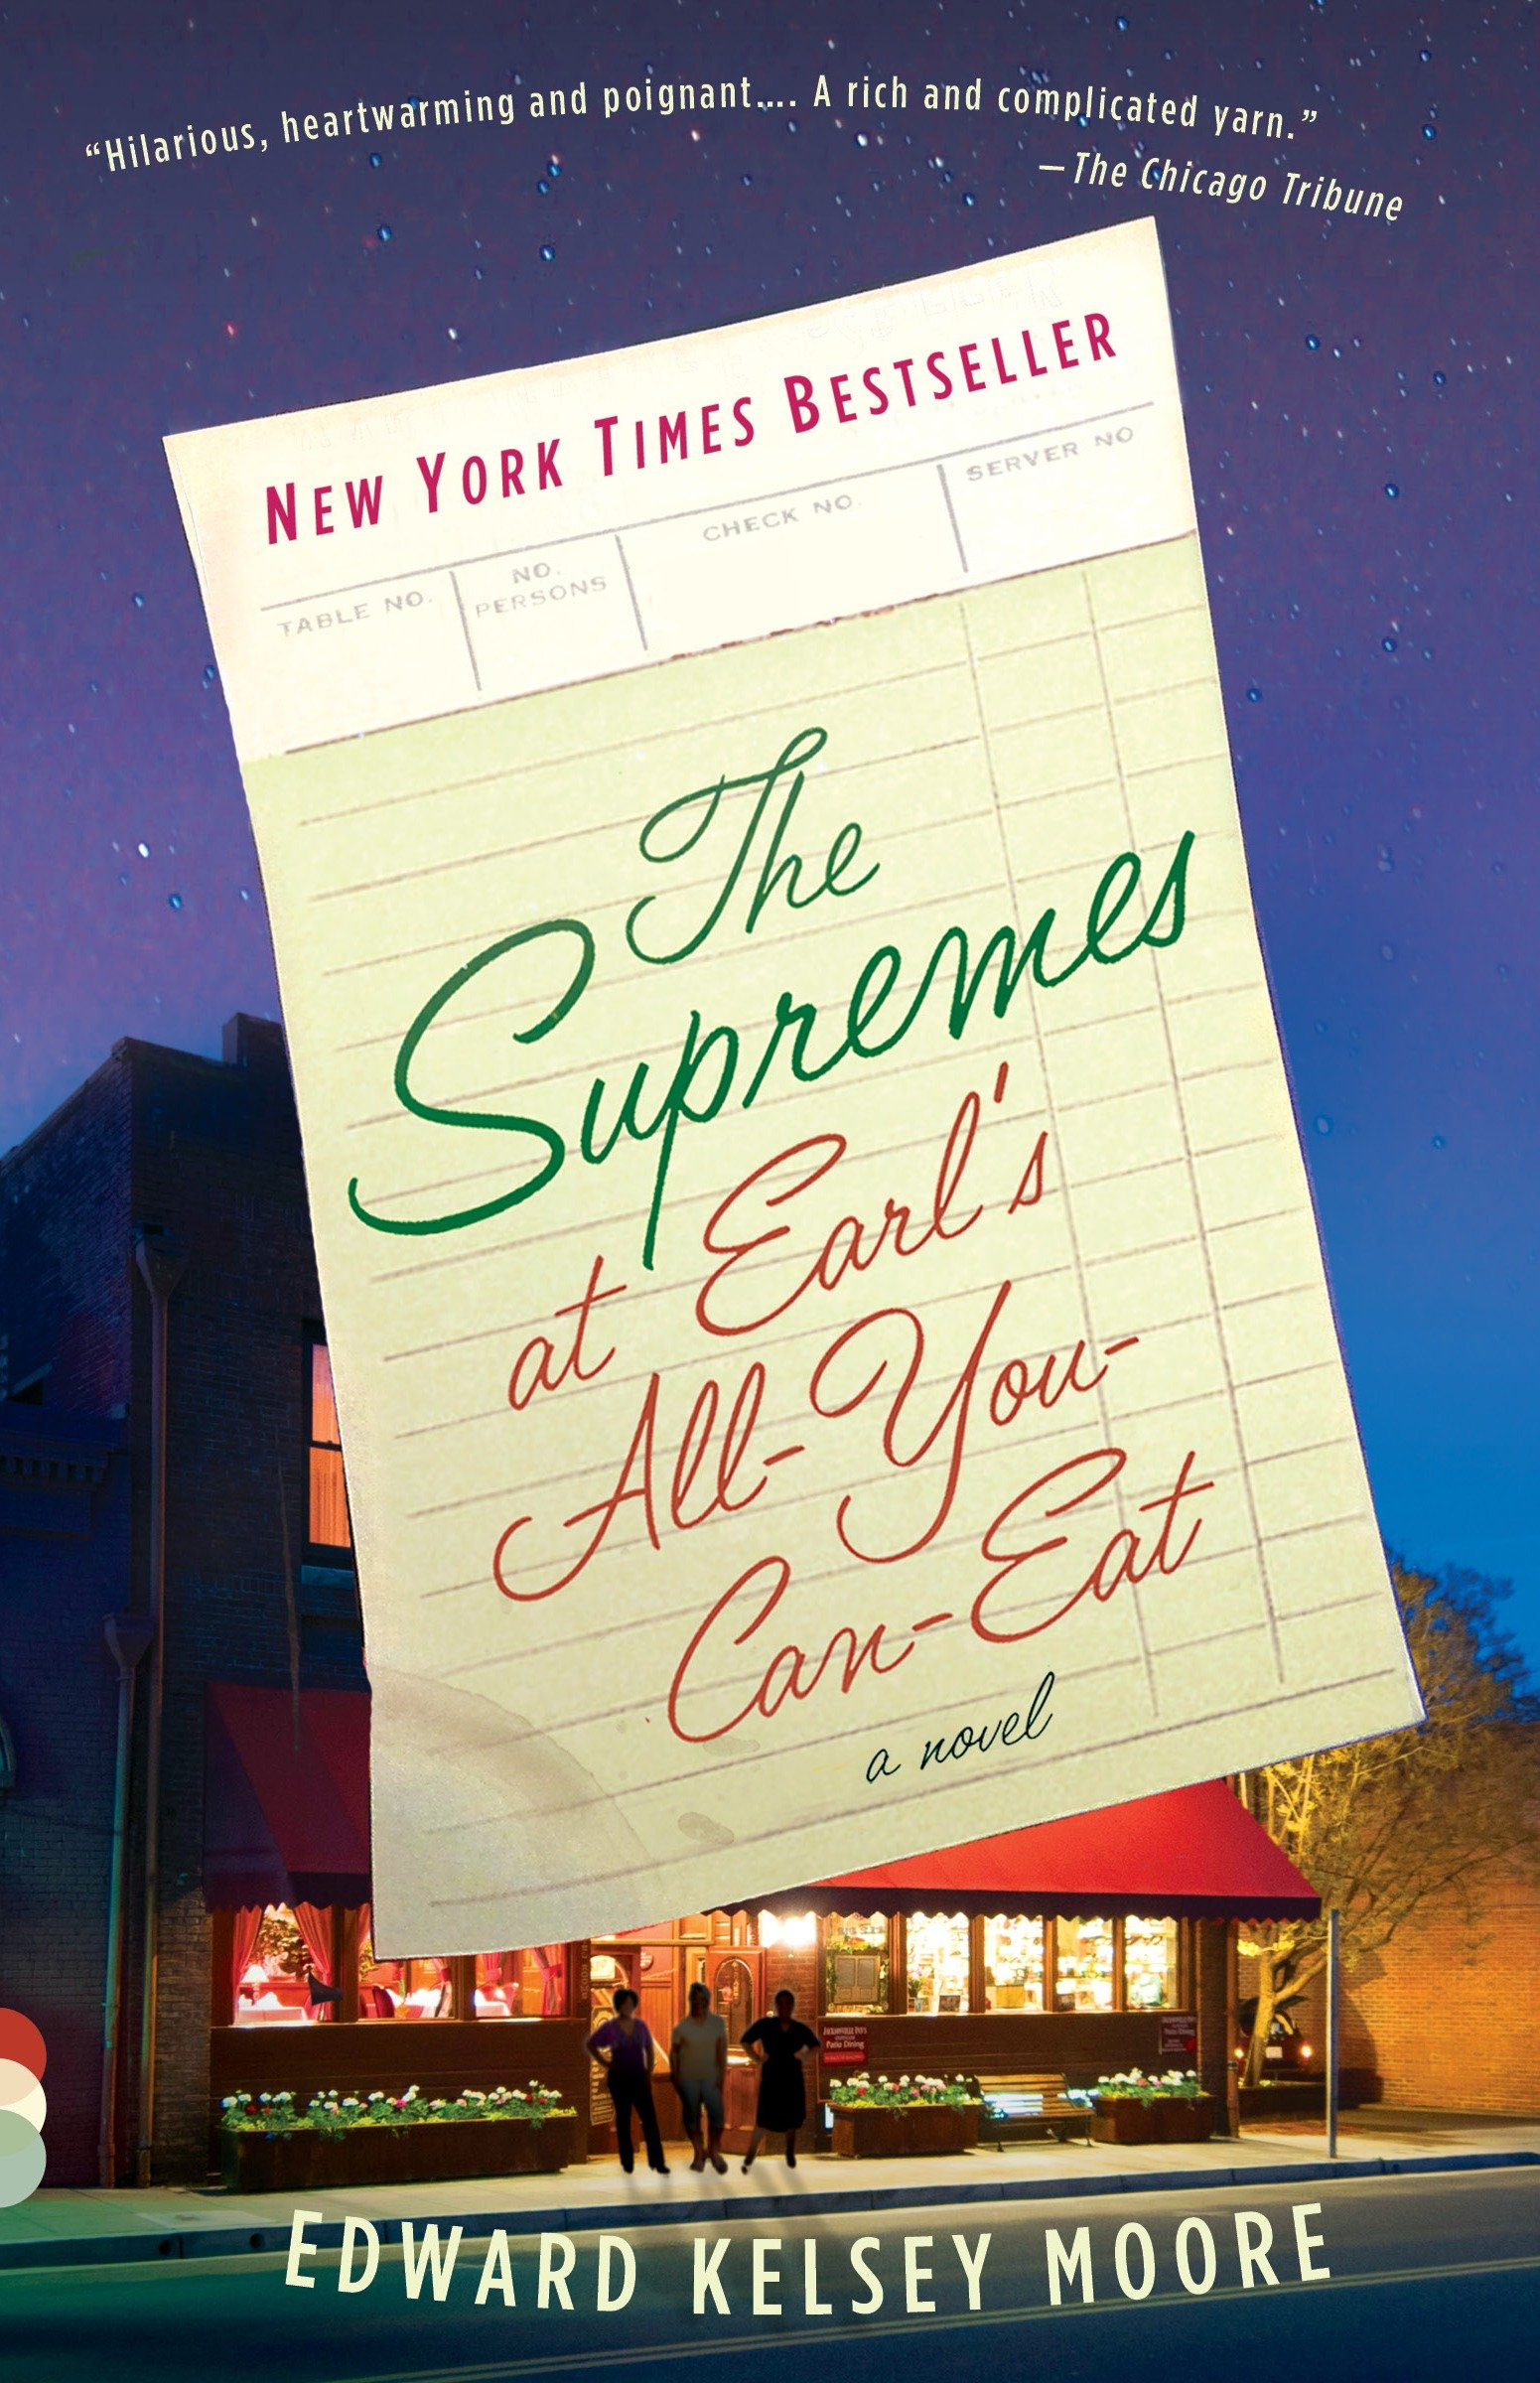 The Supremes at Earl's all-you-can-eat [a novel]